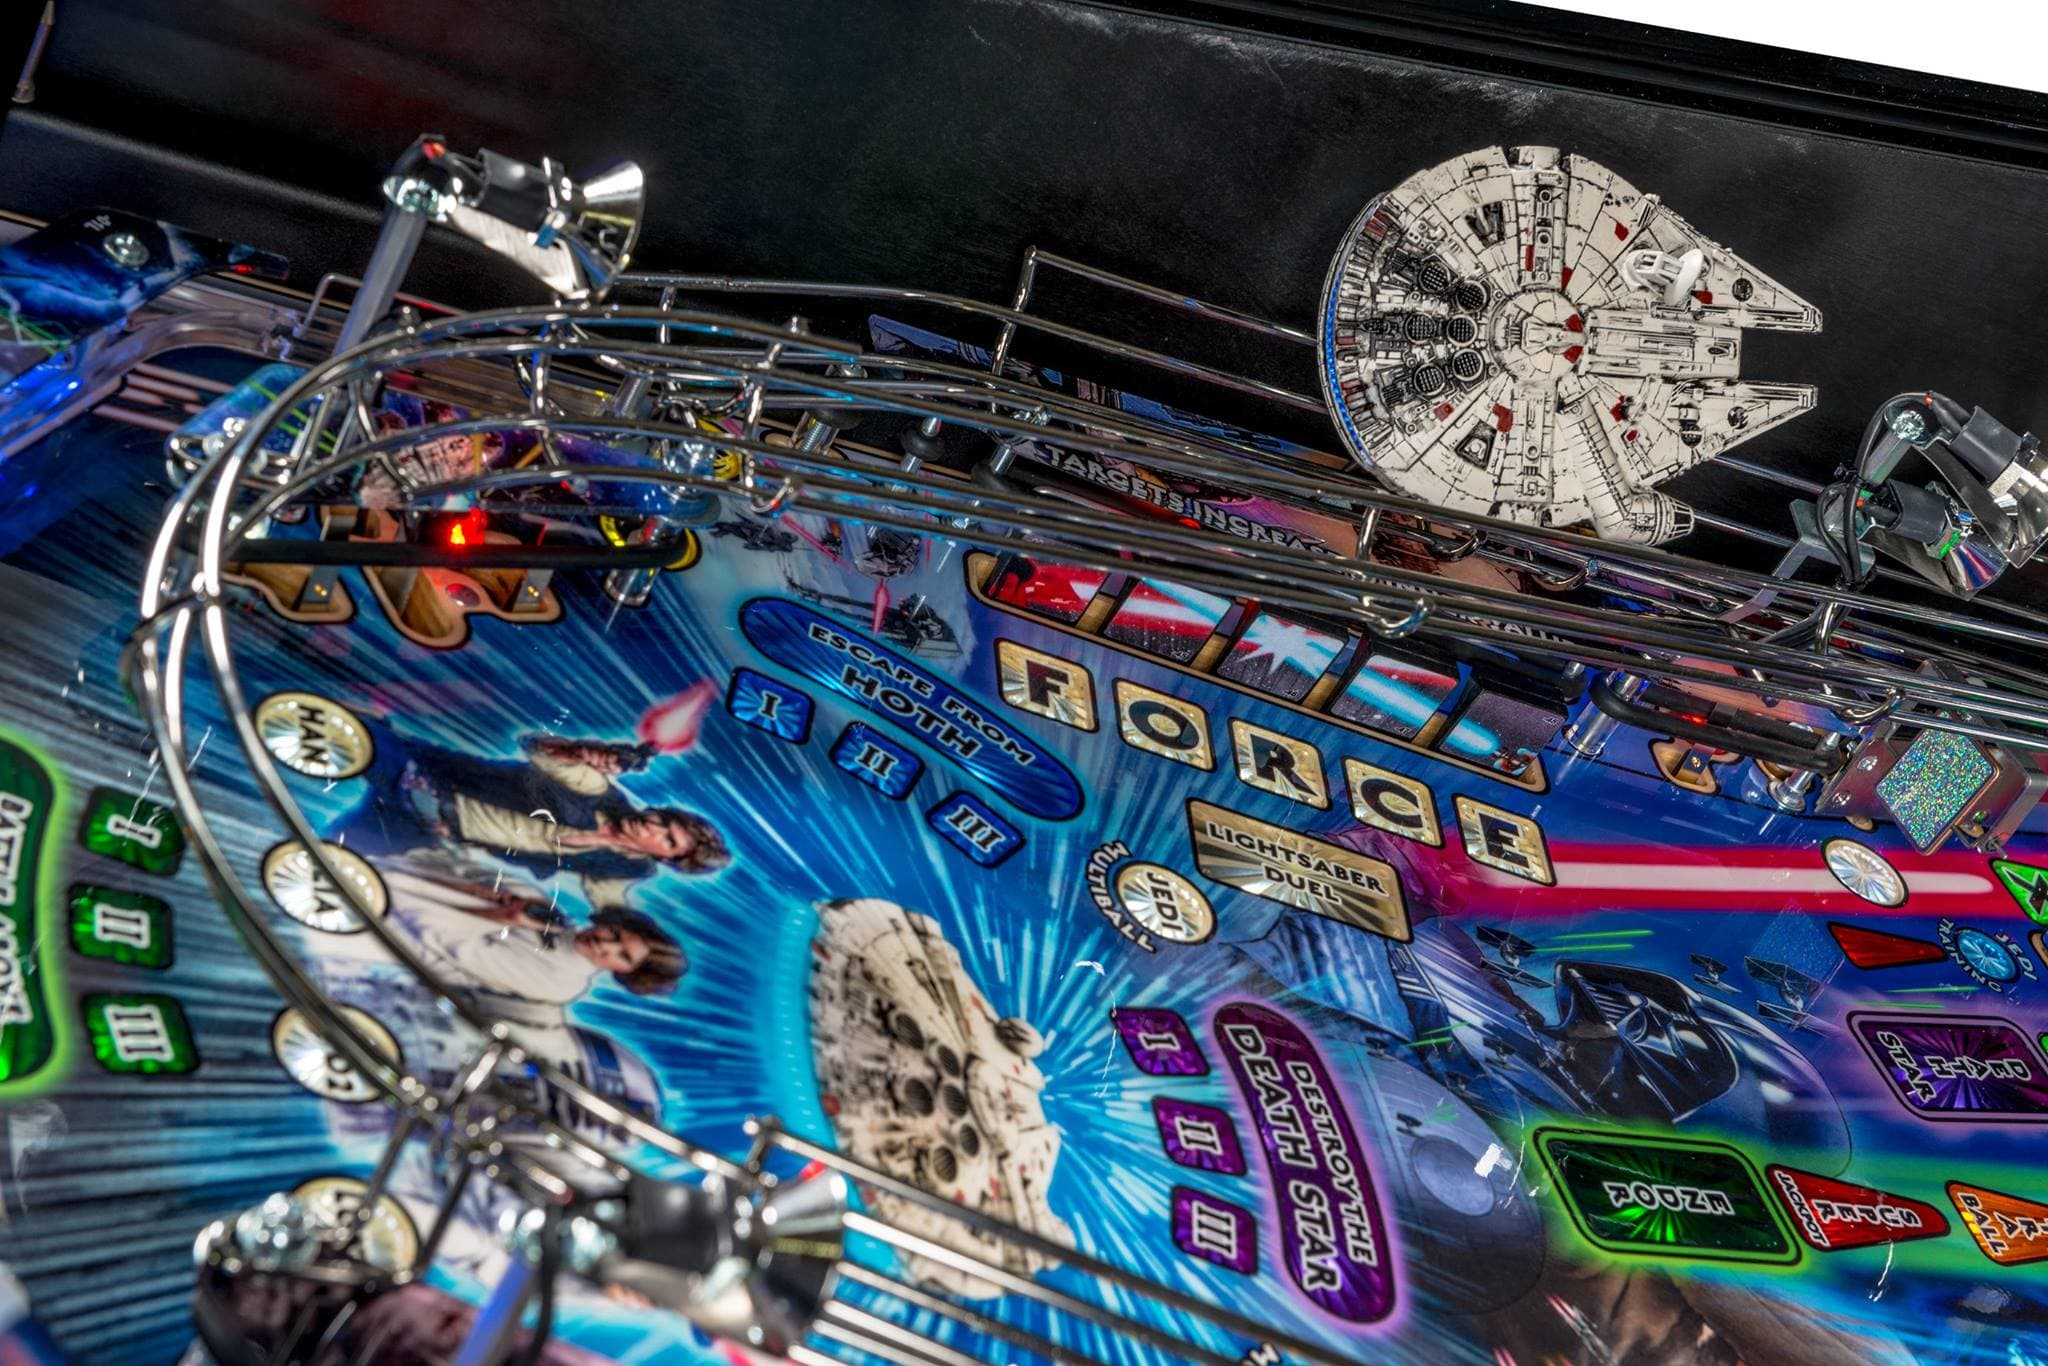 Star Wars Pinball Machine >> Star Wars Pinball Machine For Sale Uk Premium Version